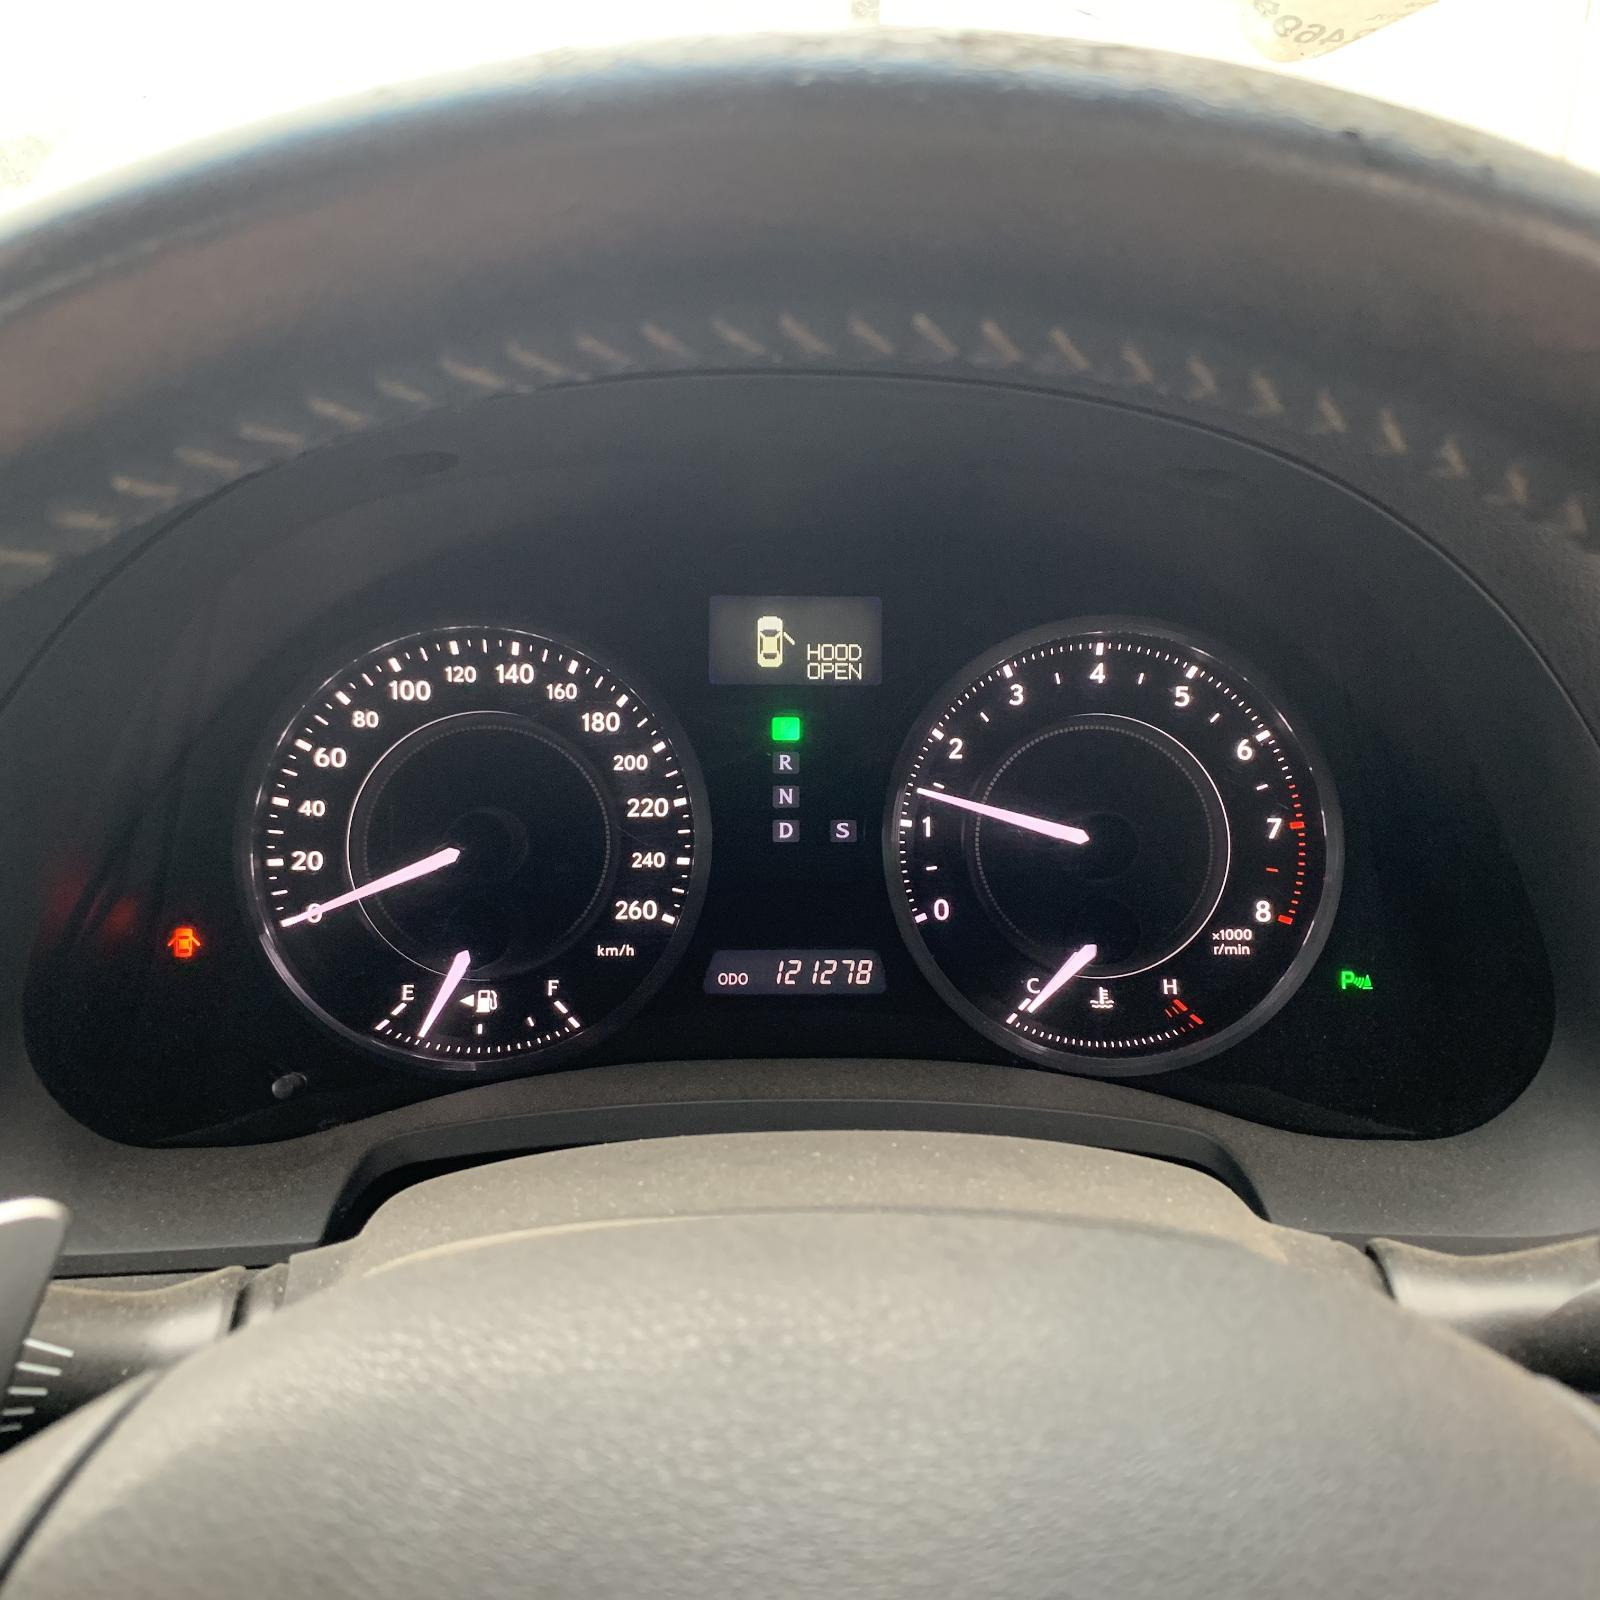 LEXUS IS250/IS250C, Instrument Cluster, AUTO T/M TYPE, GSE20R, 11/05-09/10